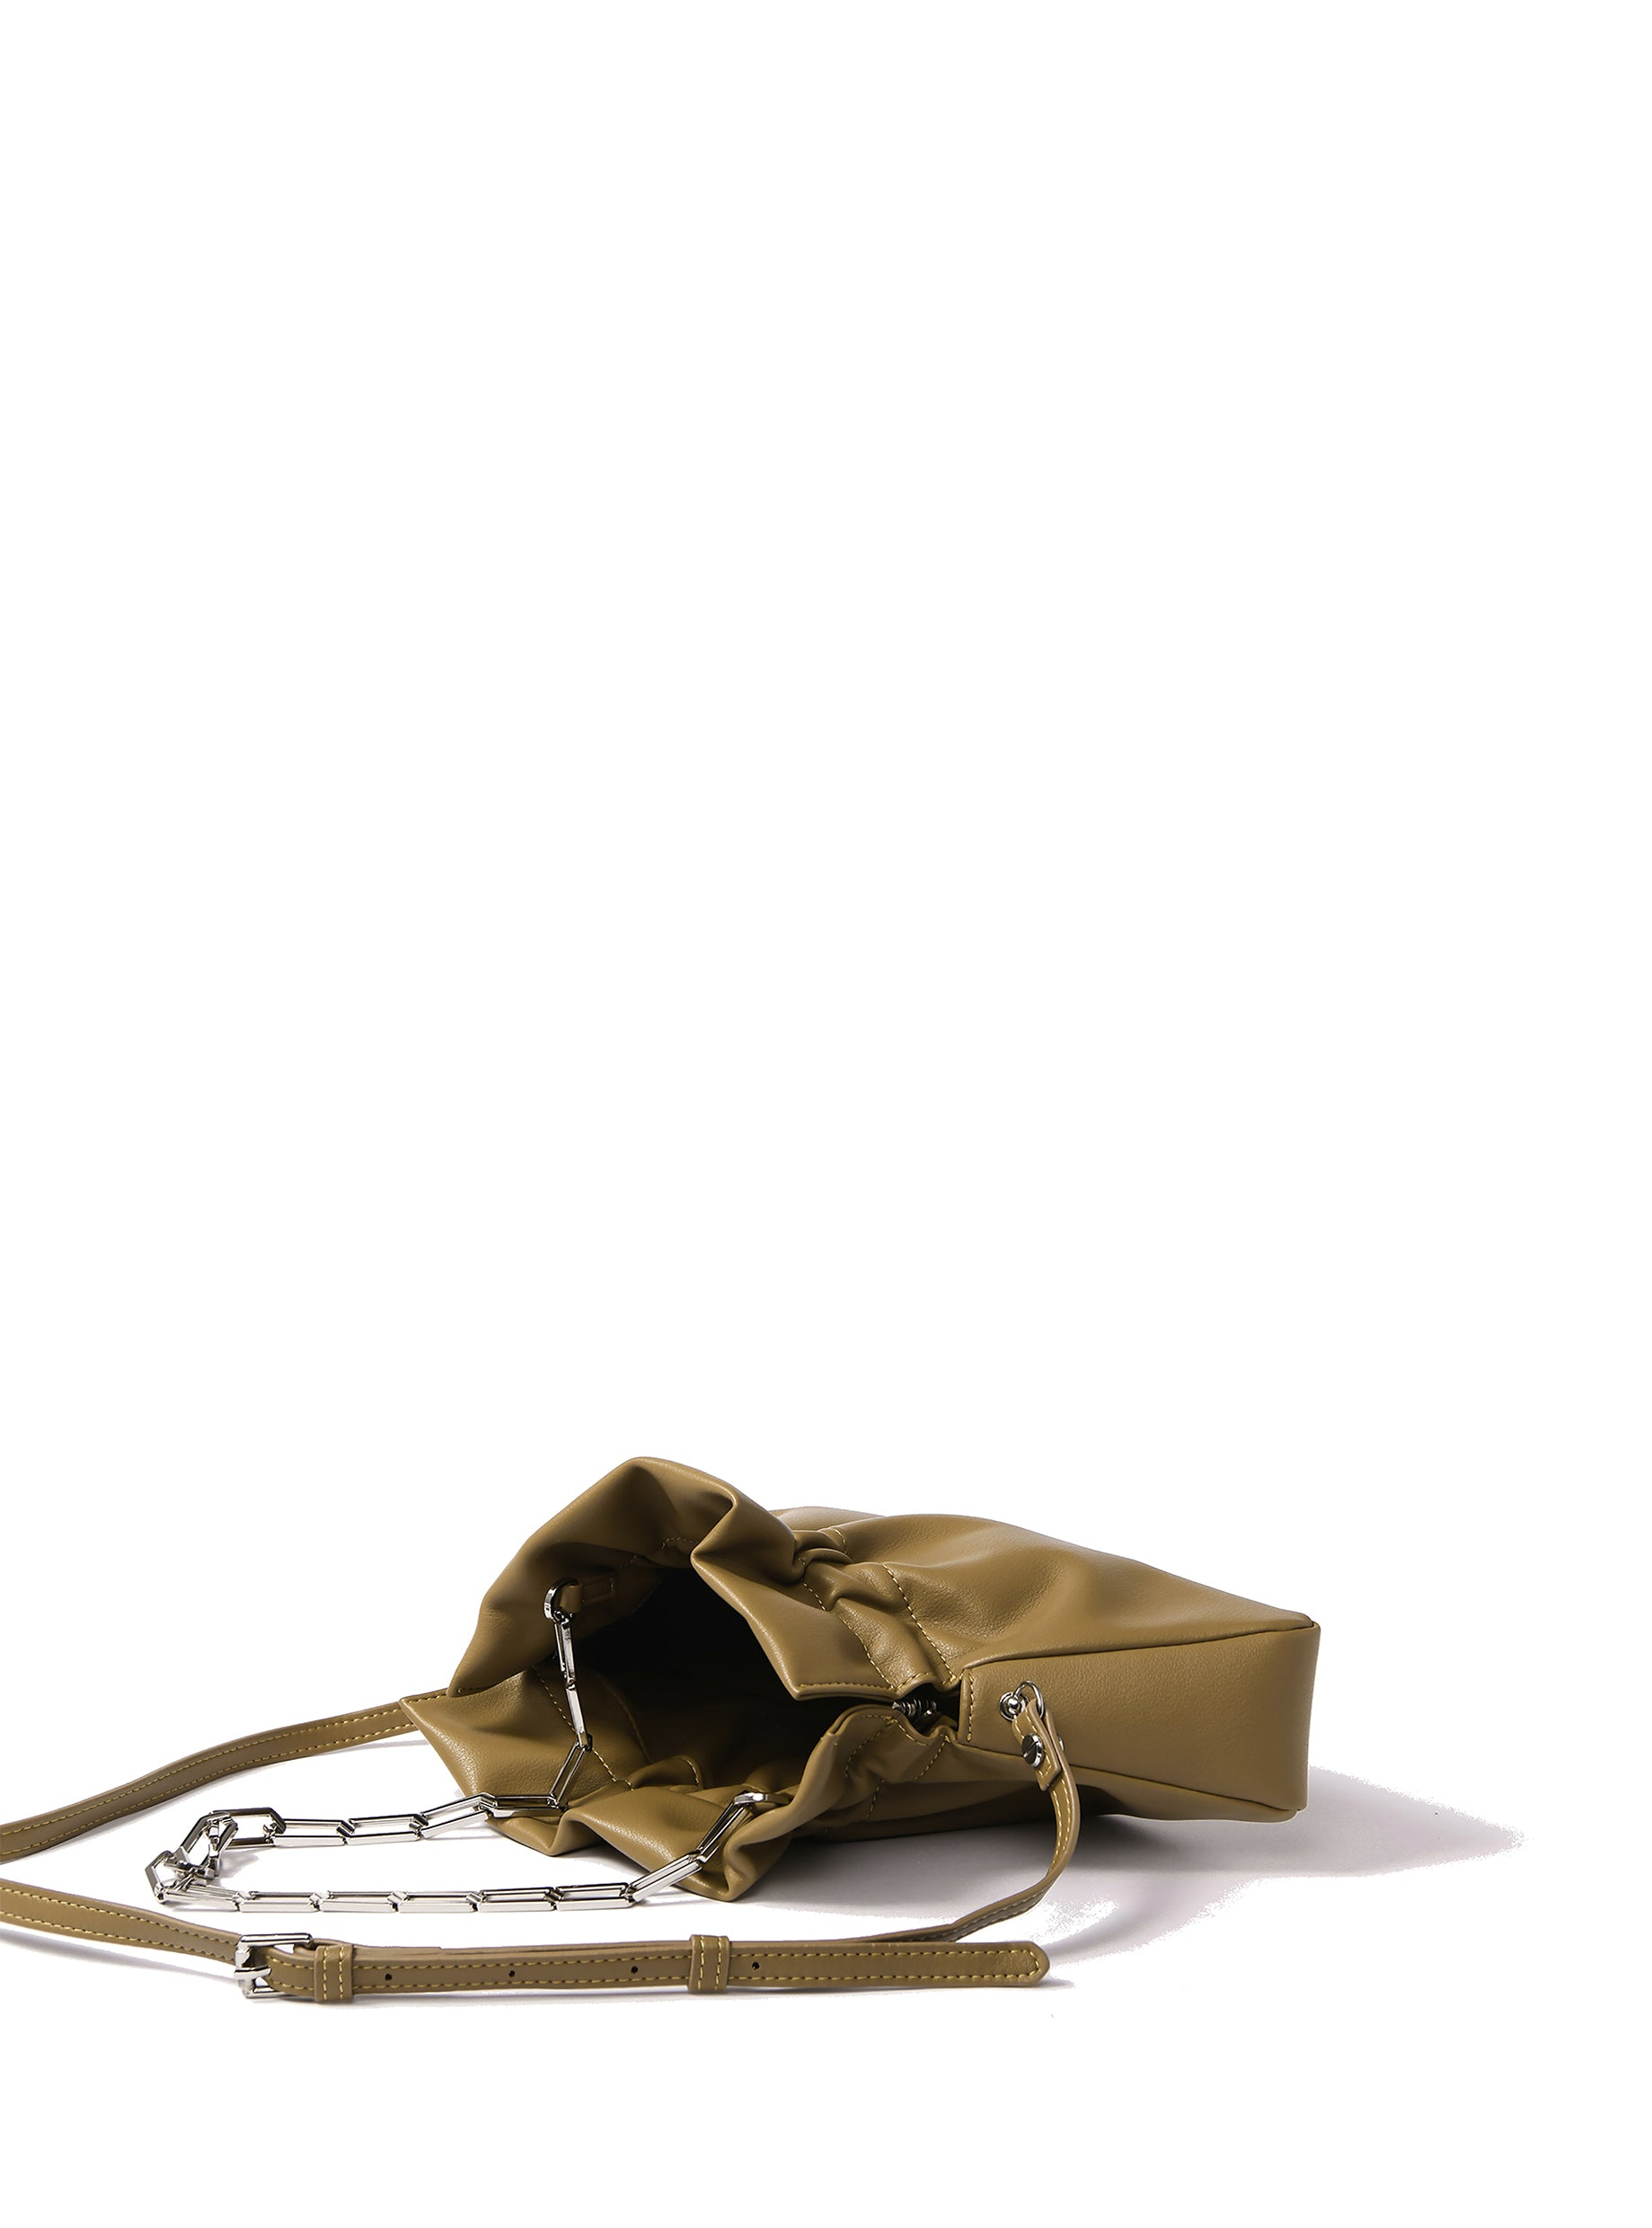 Mila Bag in smooth leather, Mustard Green